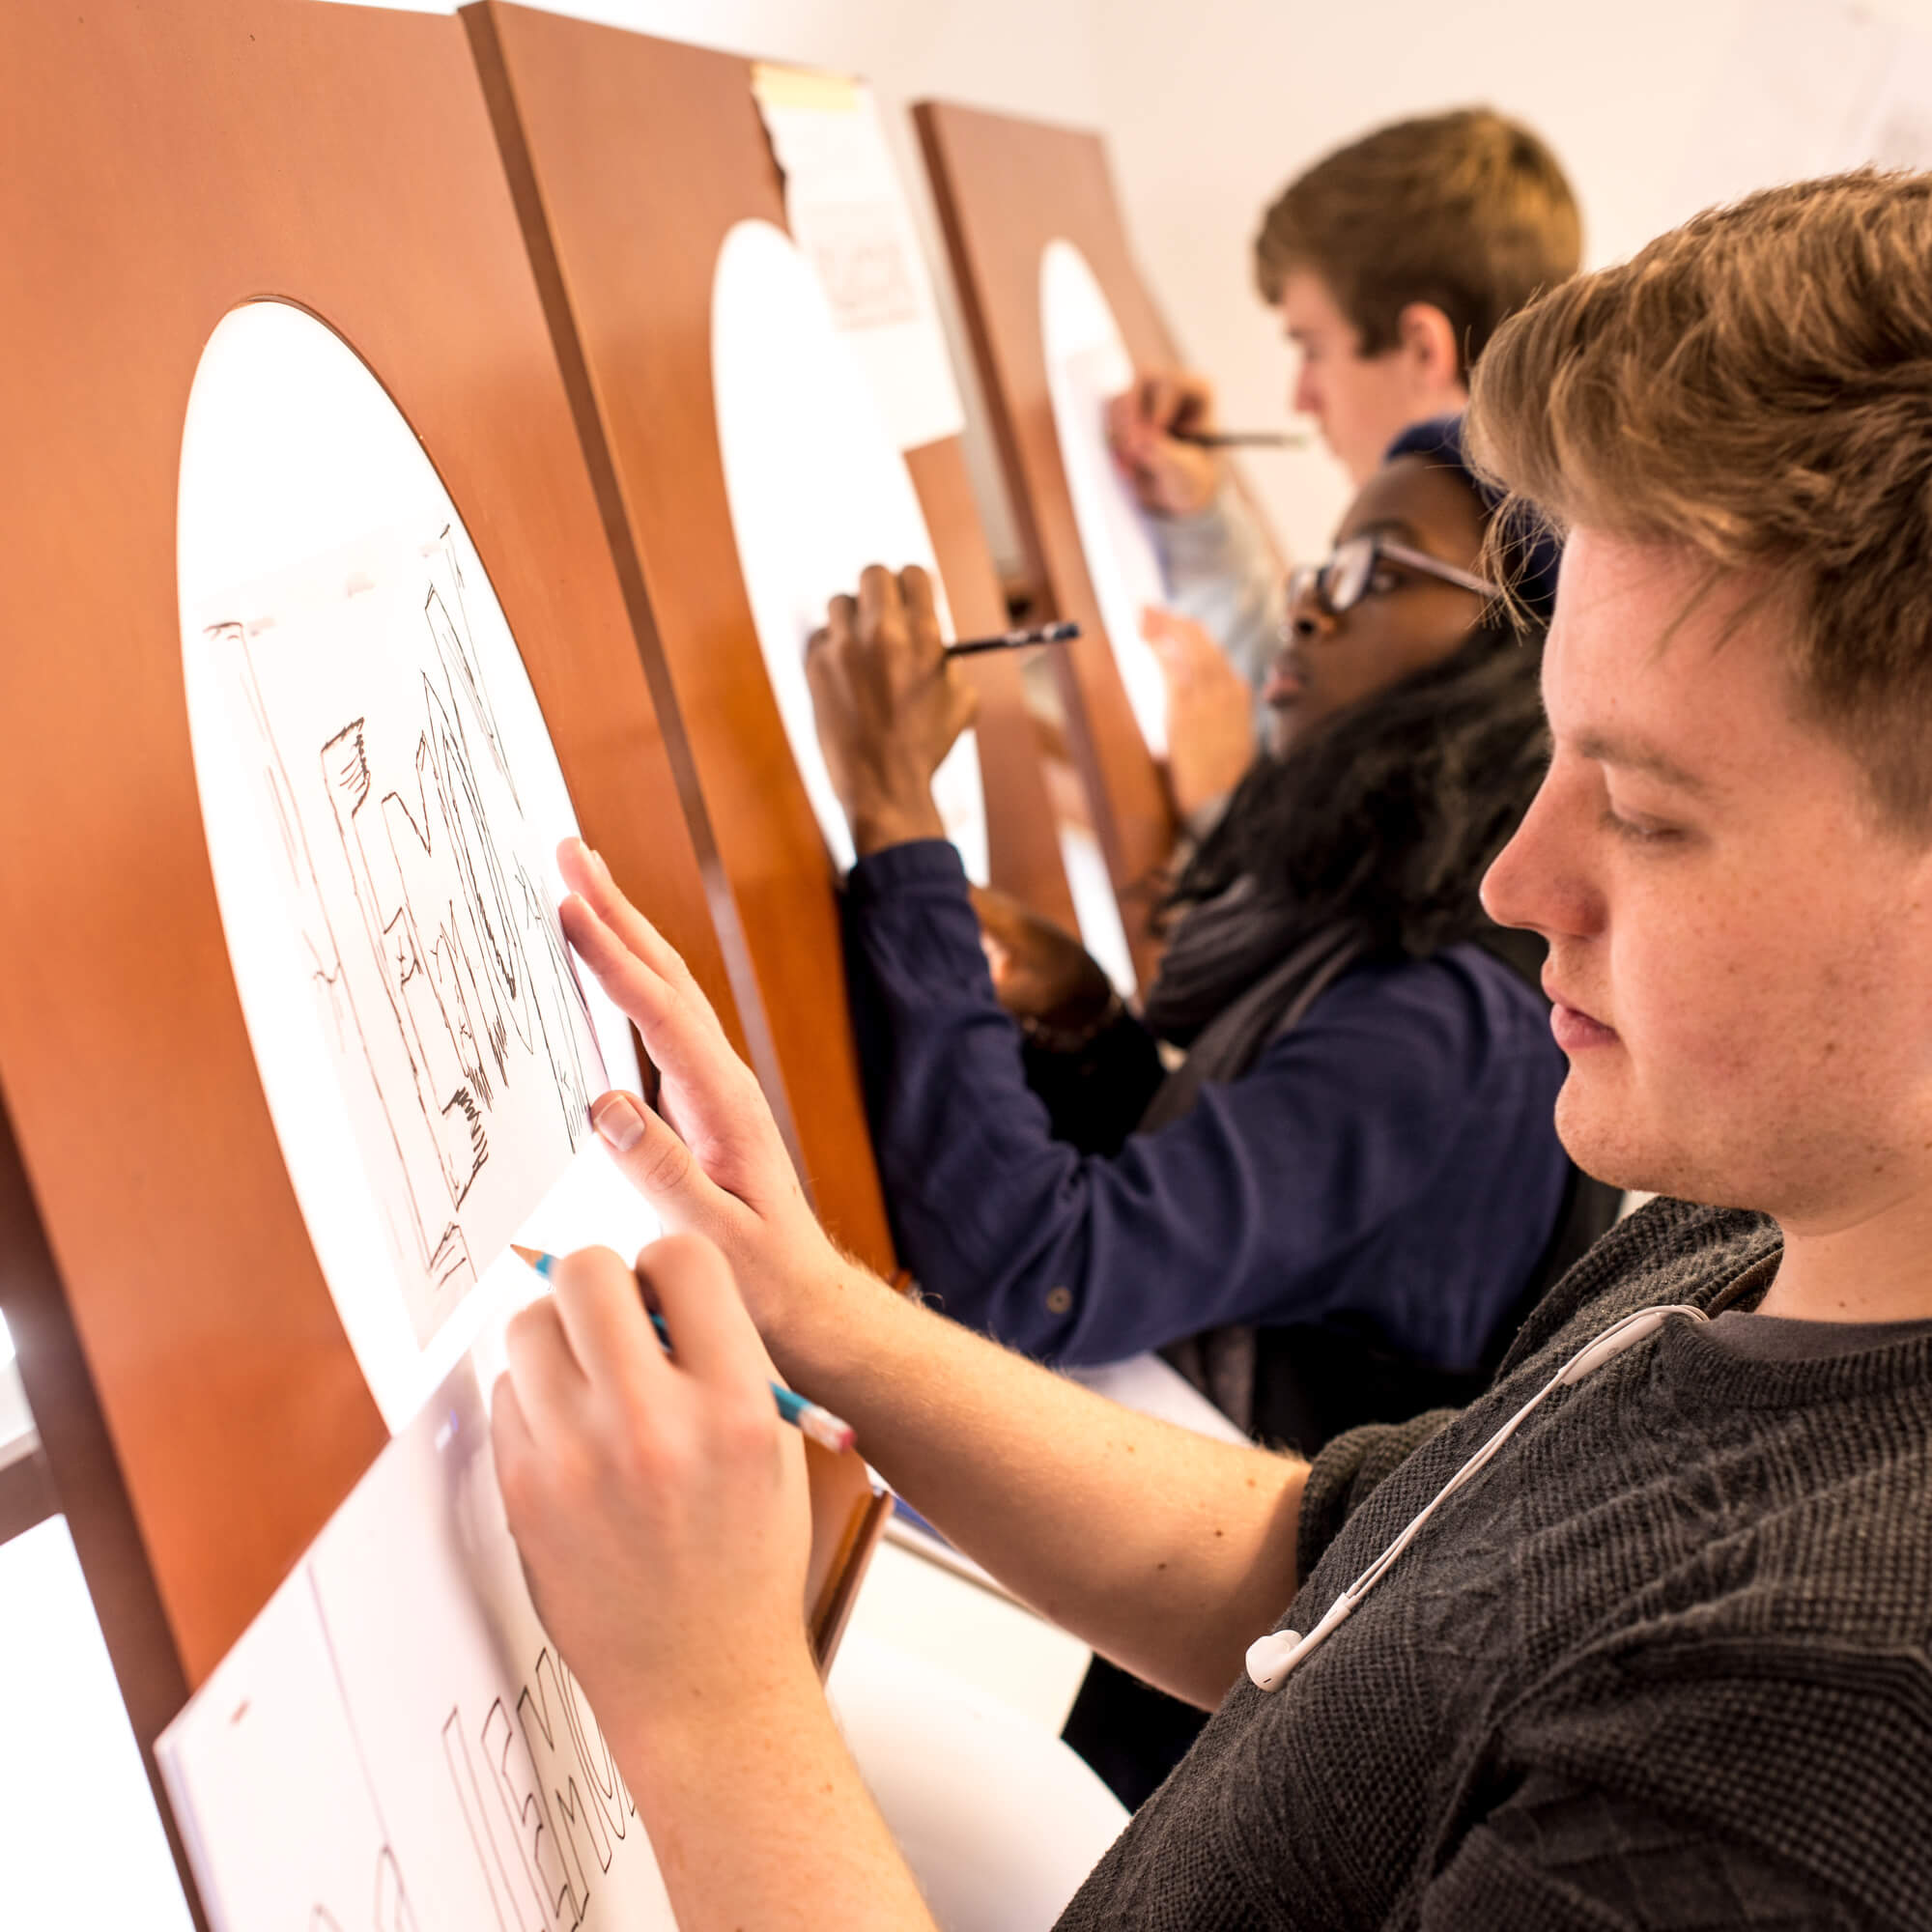 A group of students work on their drawings on lightboxes